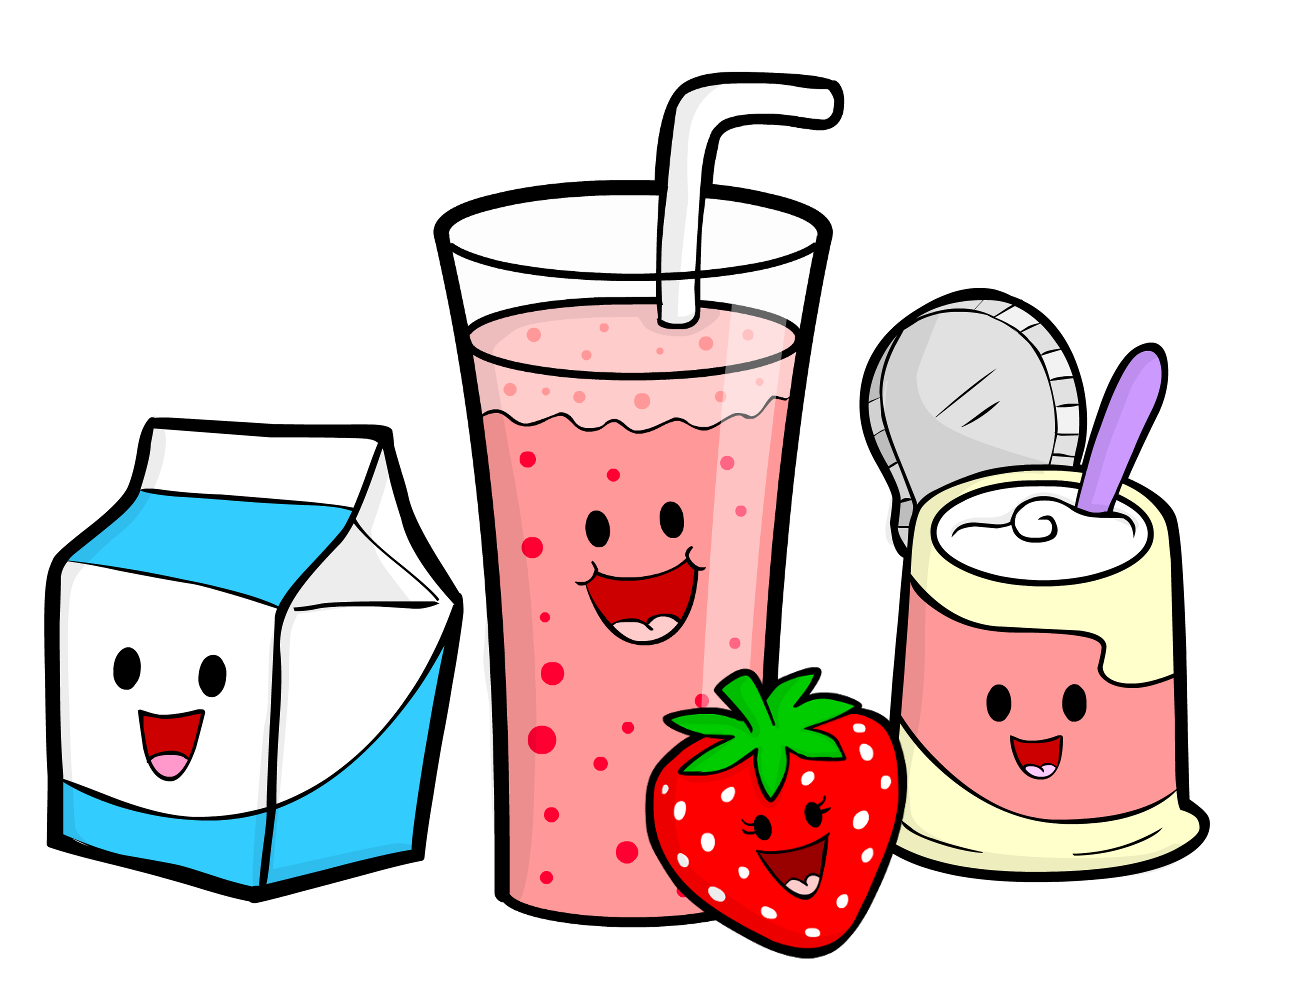 Refrigerator clipart coloring page. Free cookbooks cliparts download